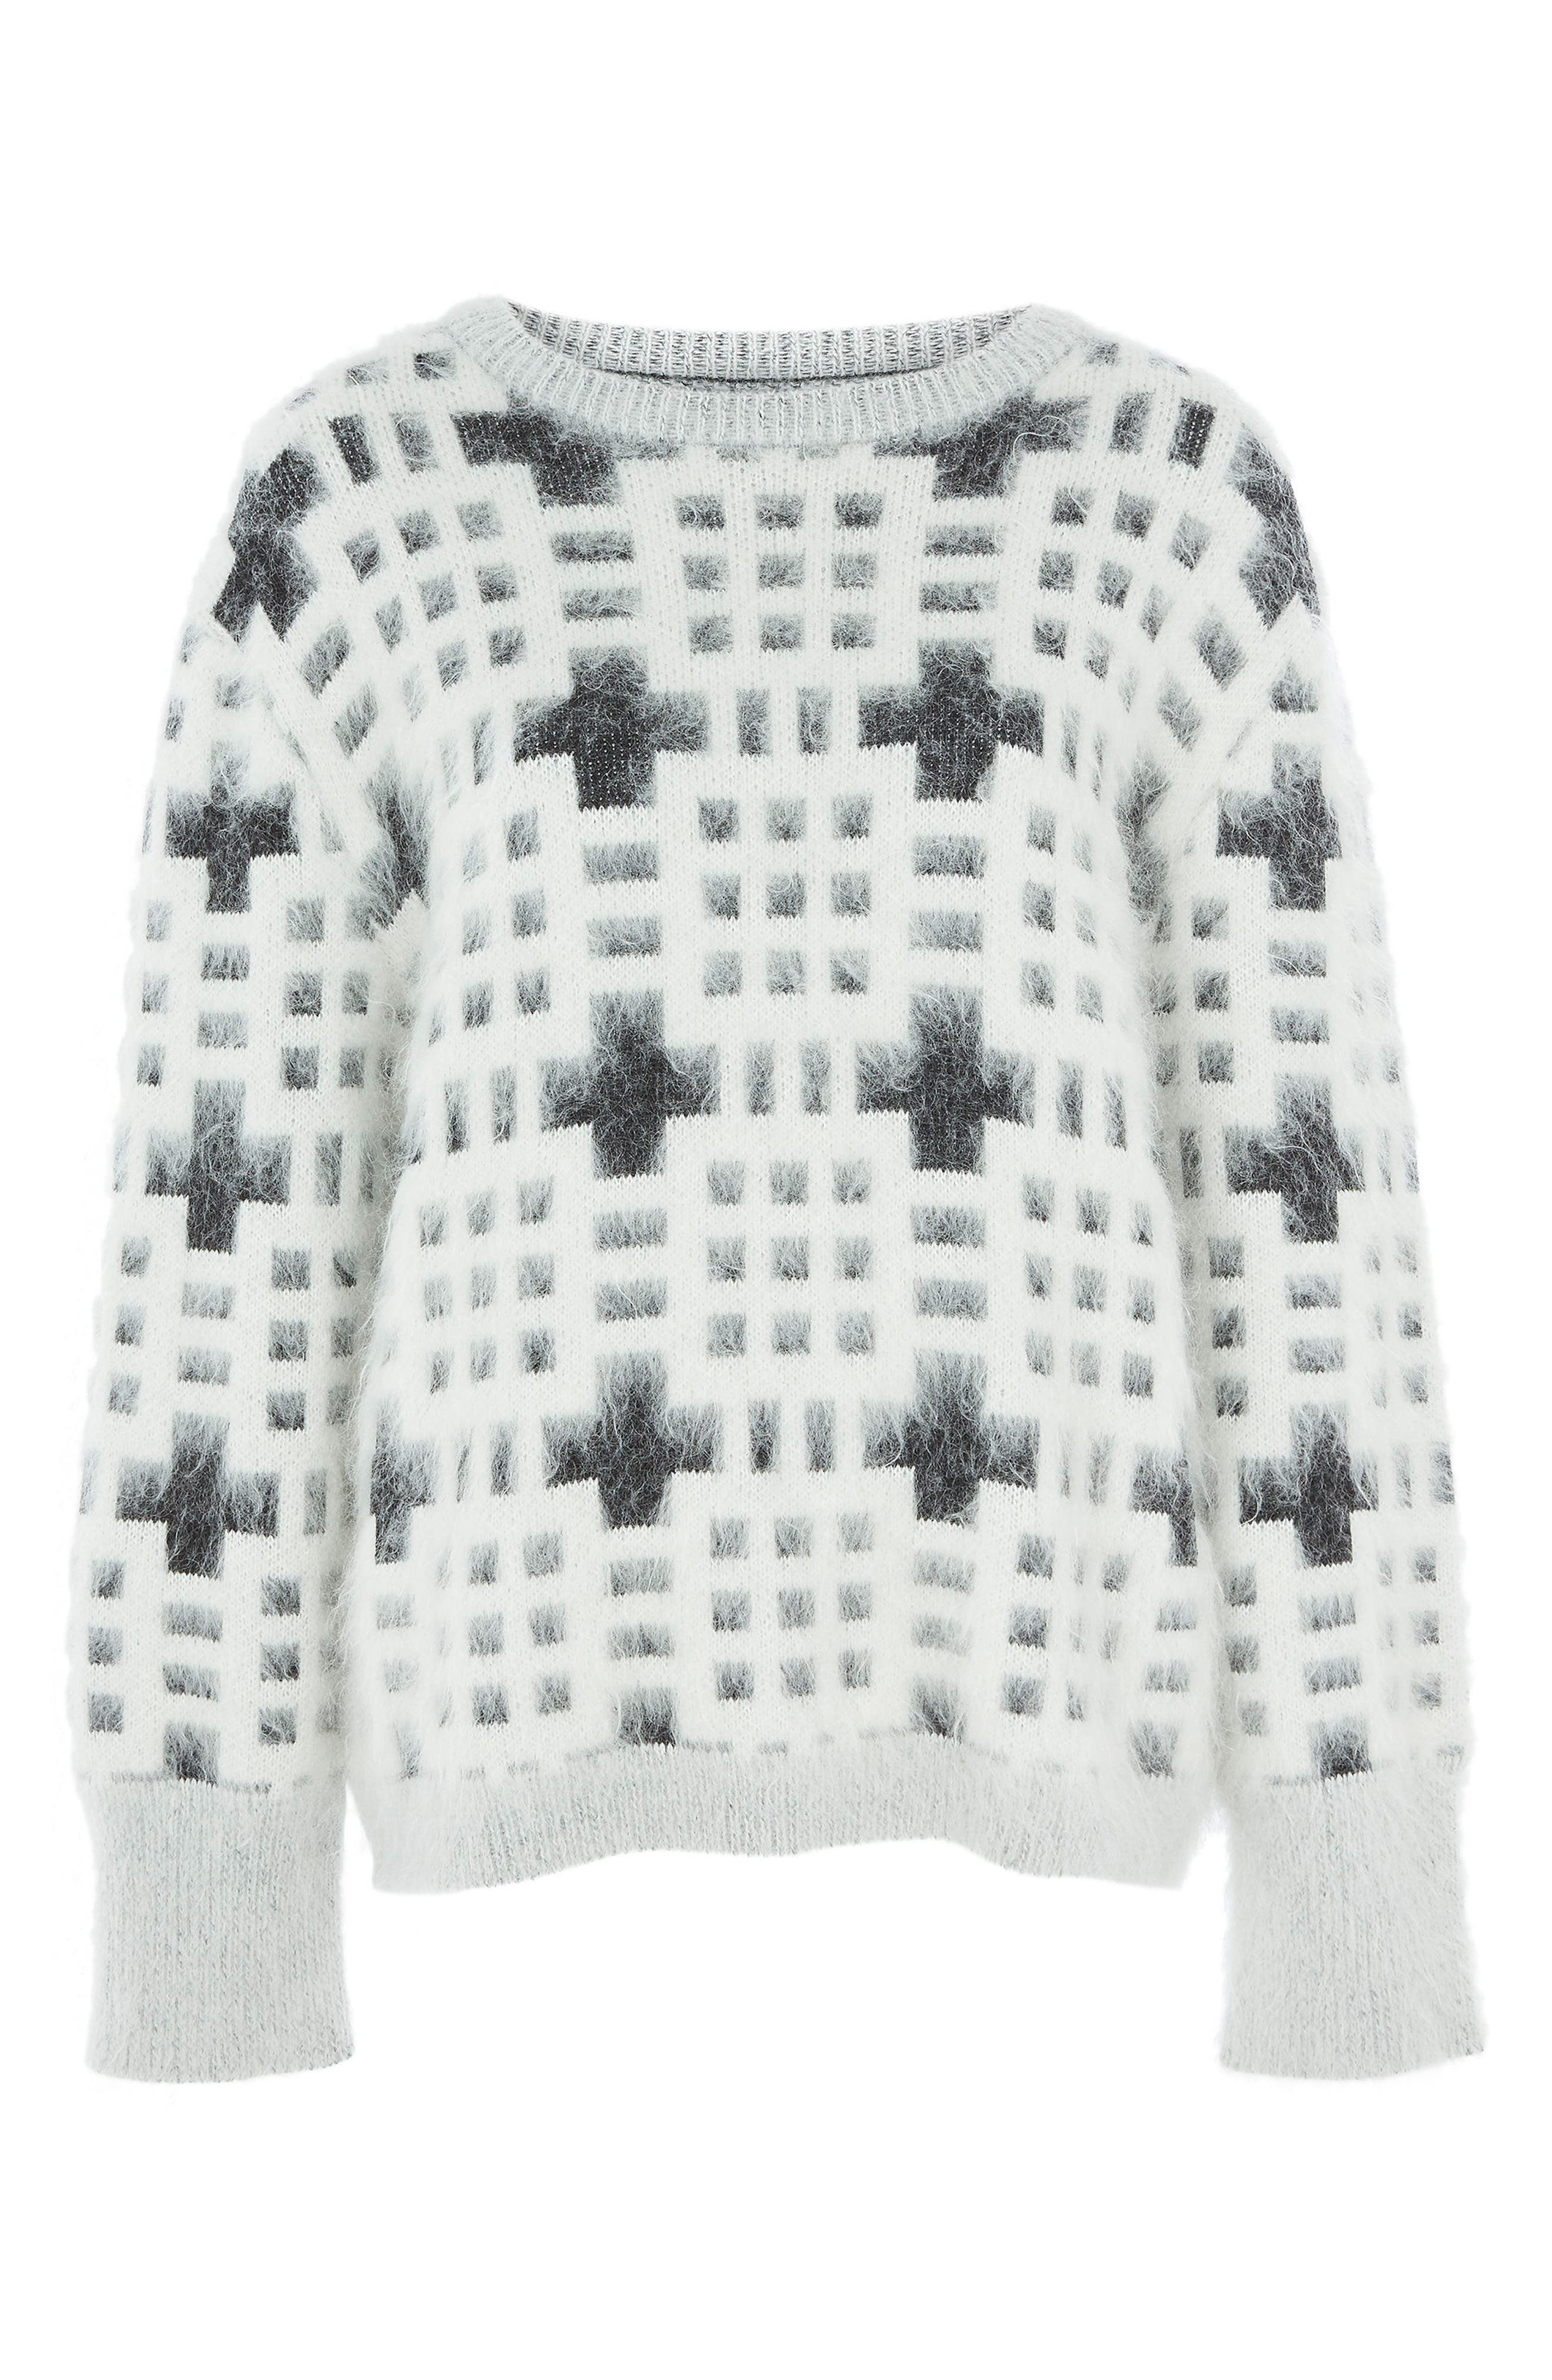 Topshop Welsh Pattern Sweater